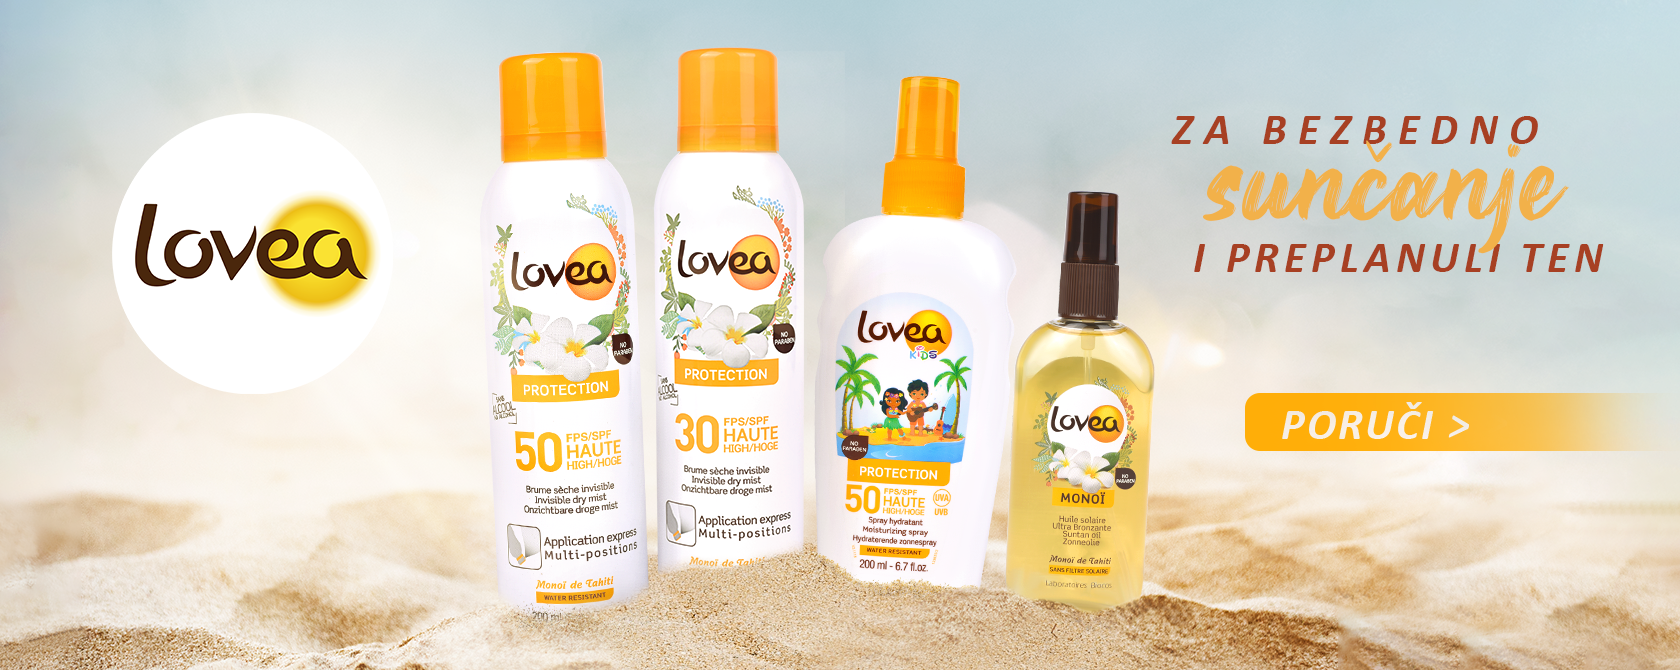 Lovea products